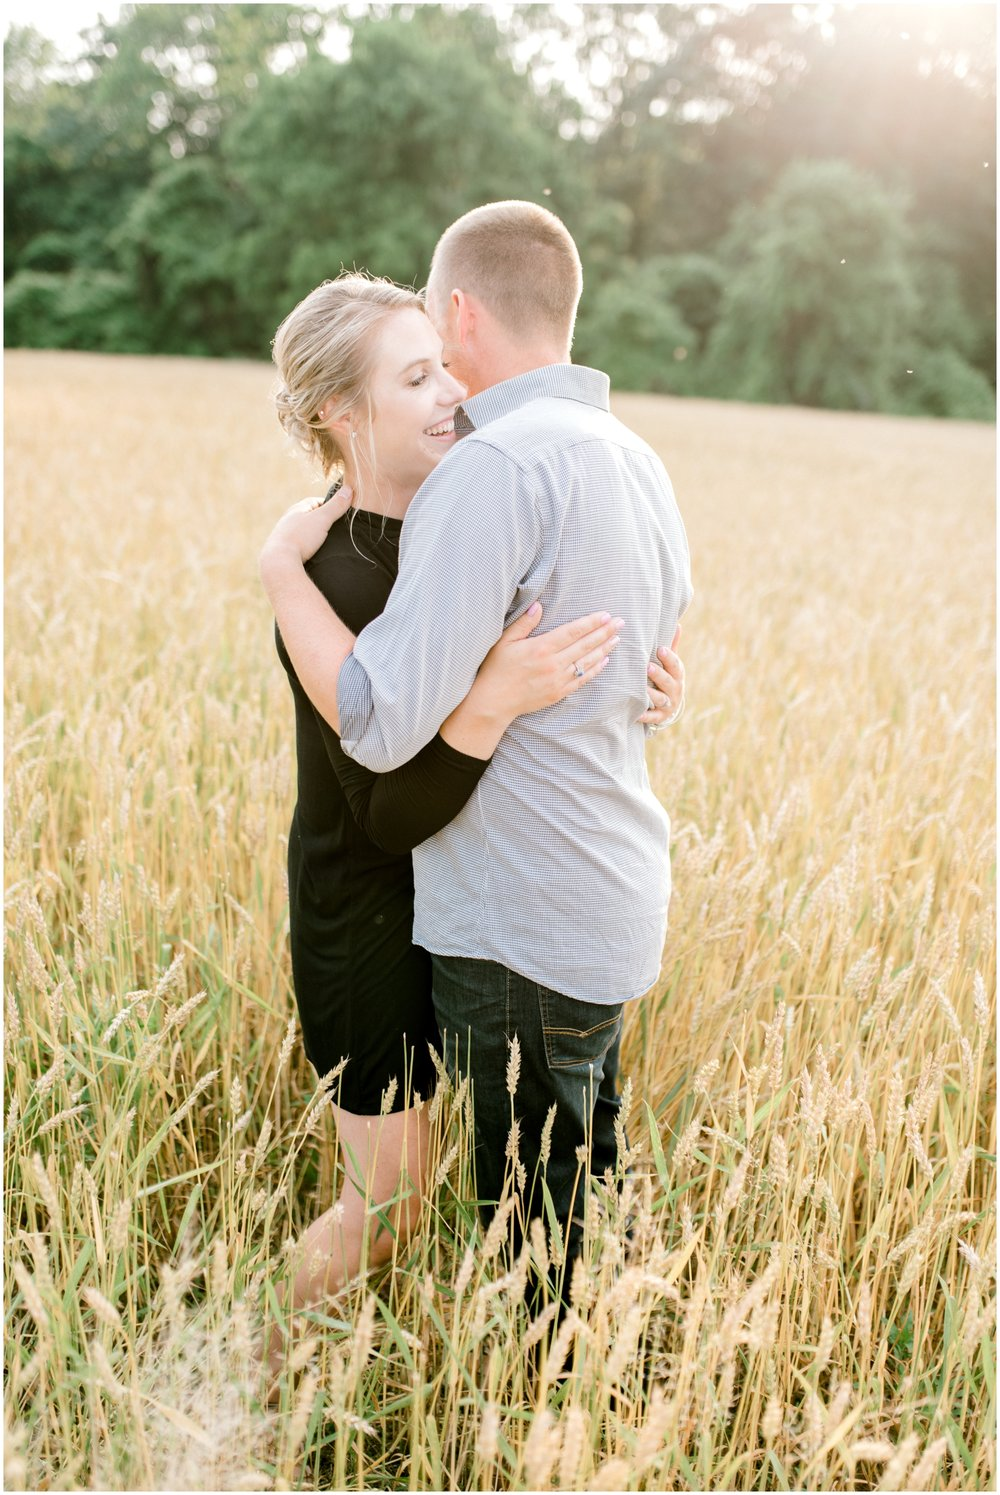 Summer Private Farm Engagement Session - Krista Brackin Photography_0016.jpg